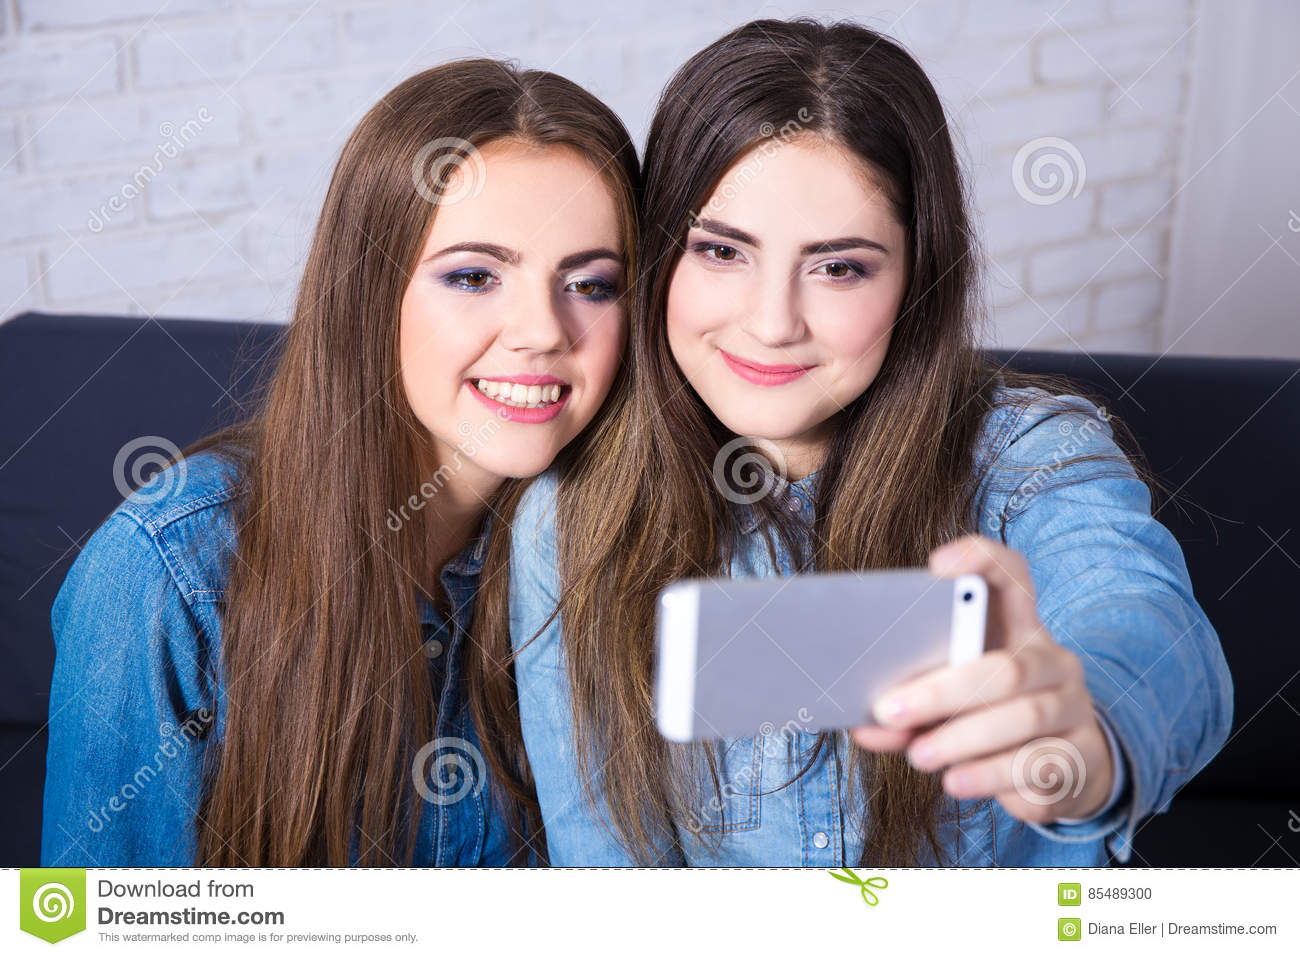 Two girls taking selfie photo with smart phone